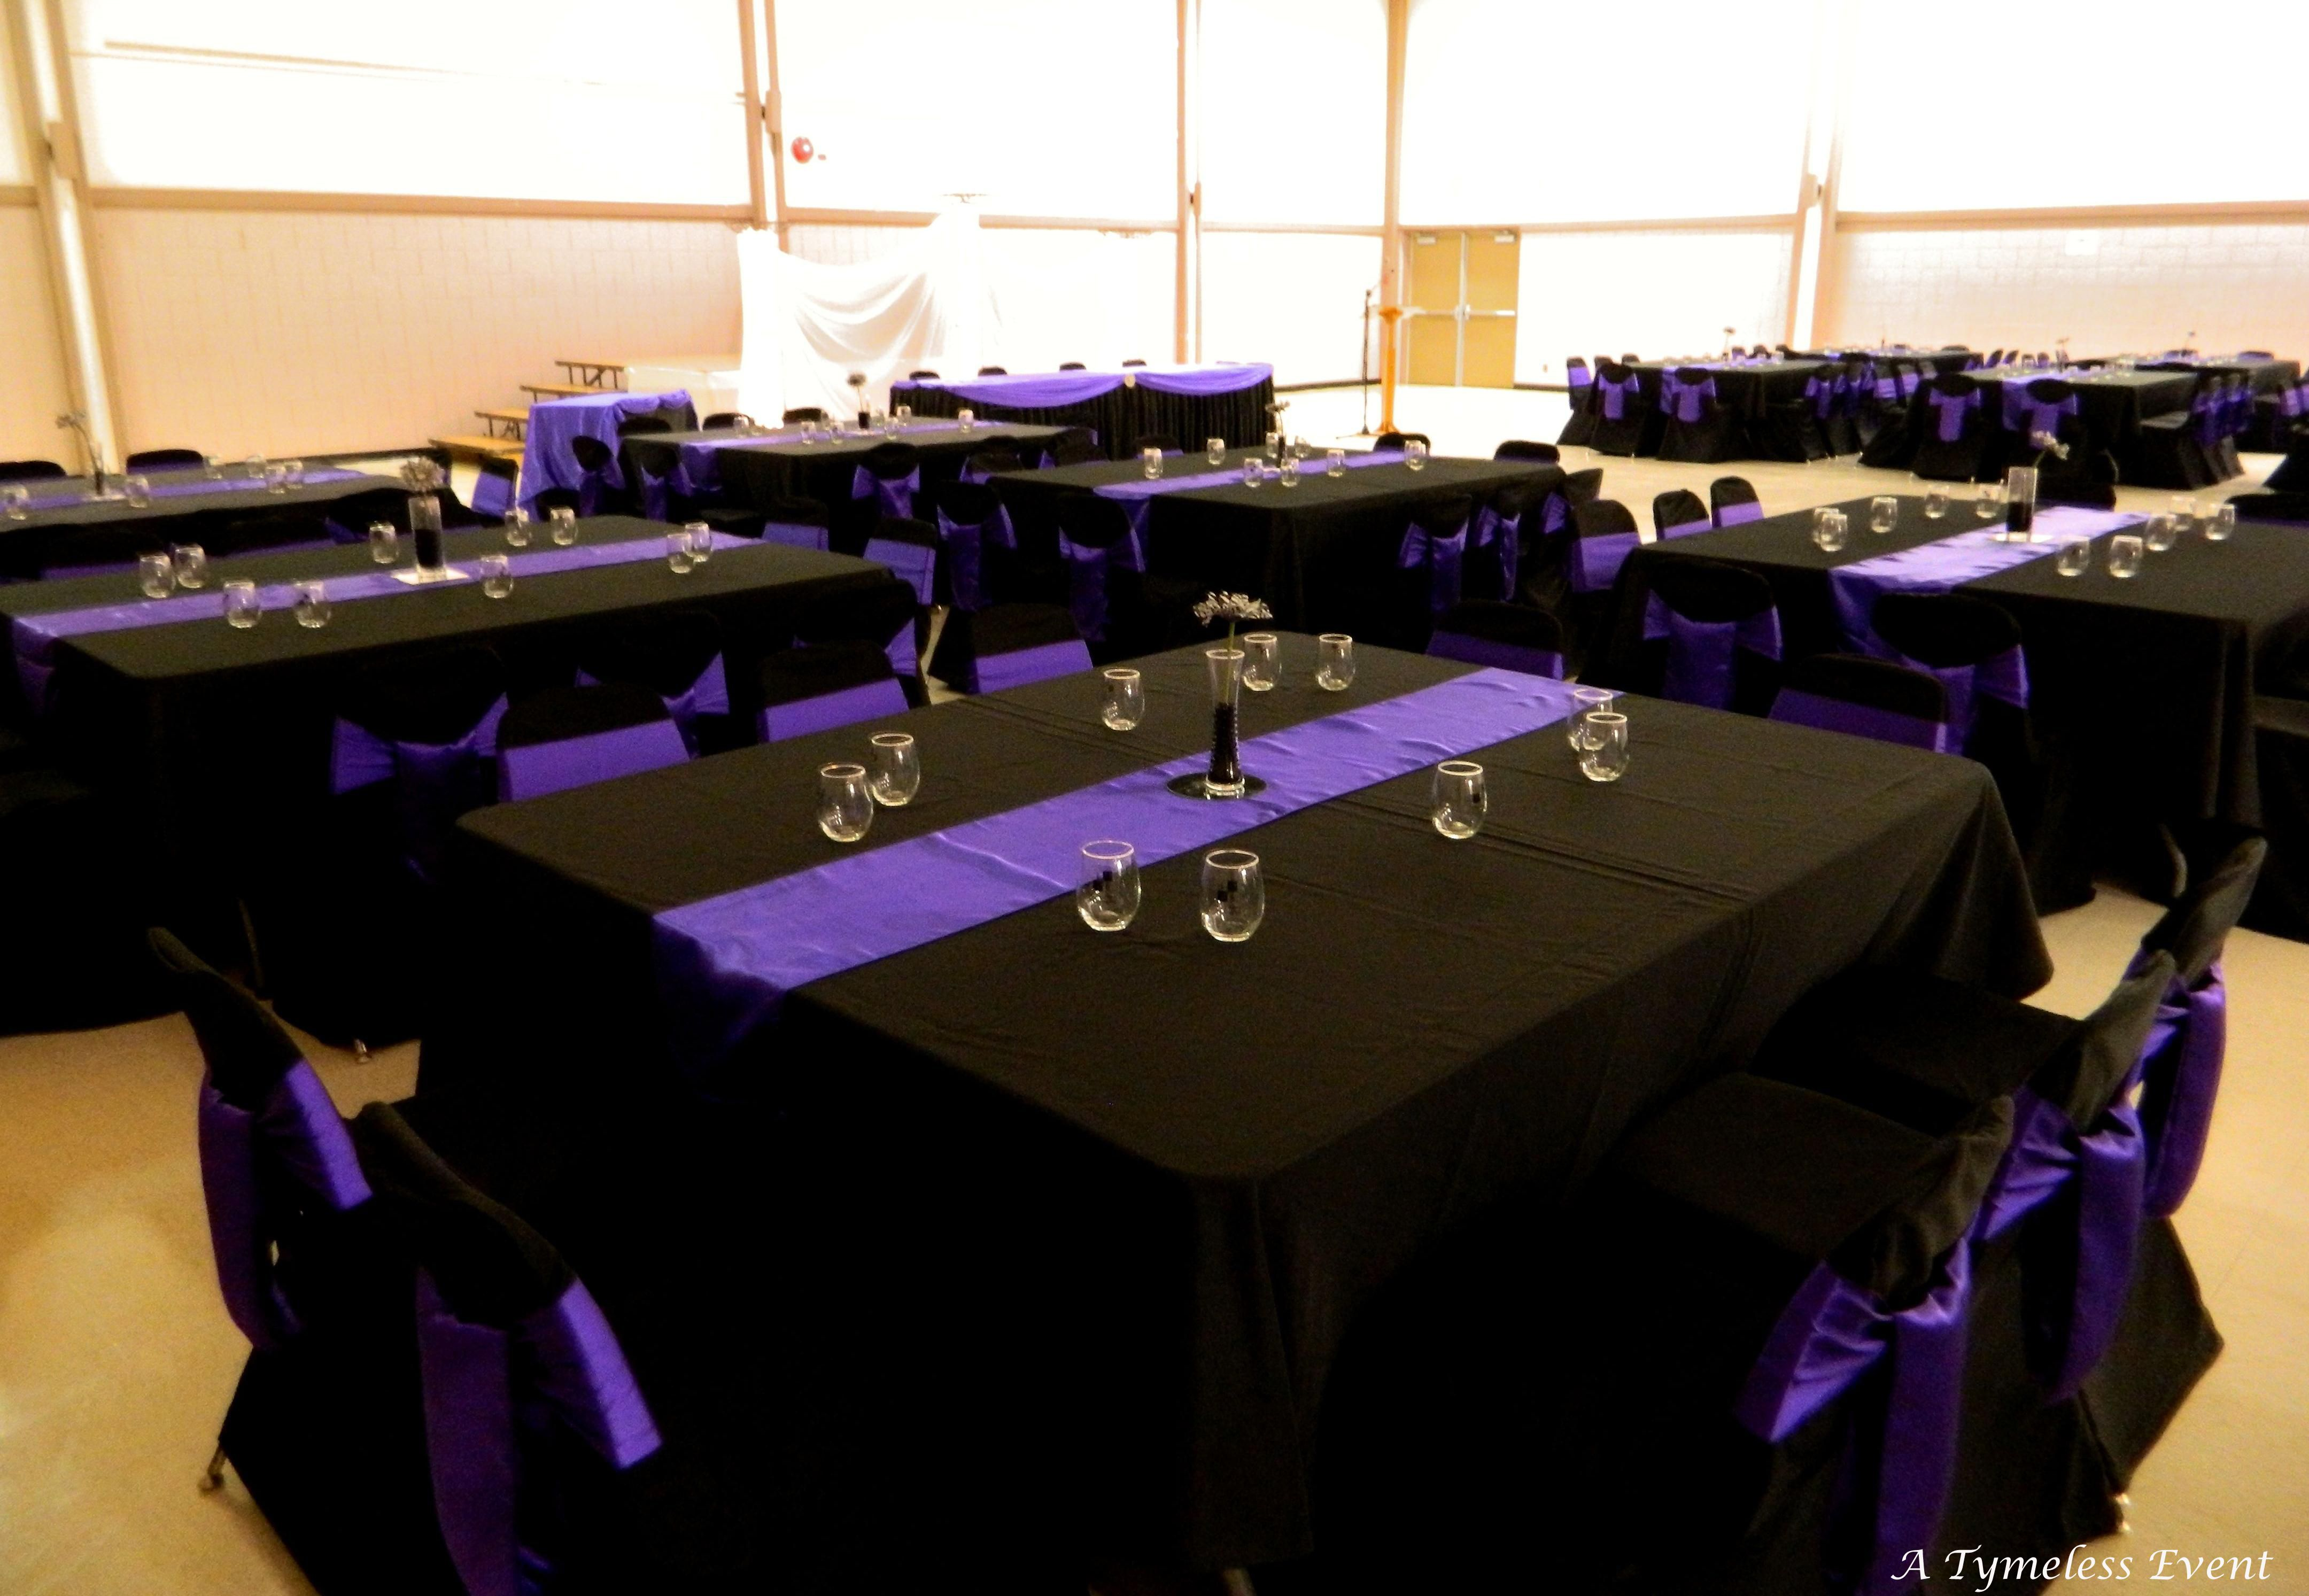 Black And Purple Table Cloth | Black Tablecloths With Purple Satin Runners